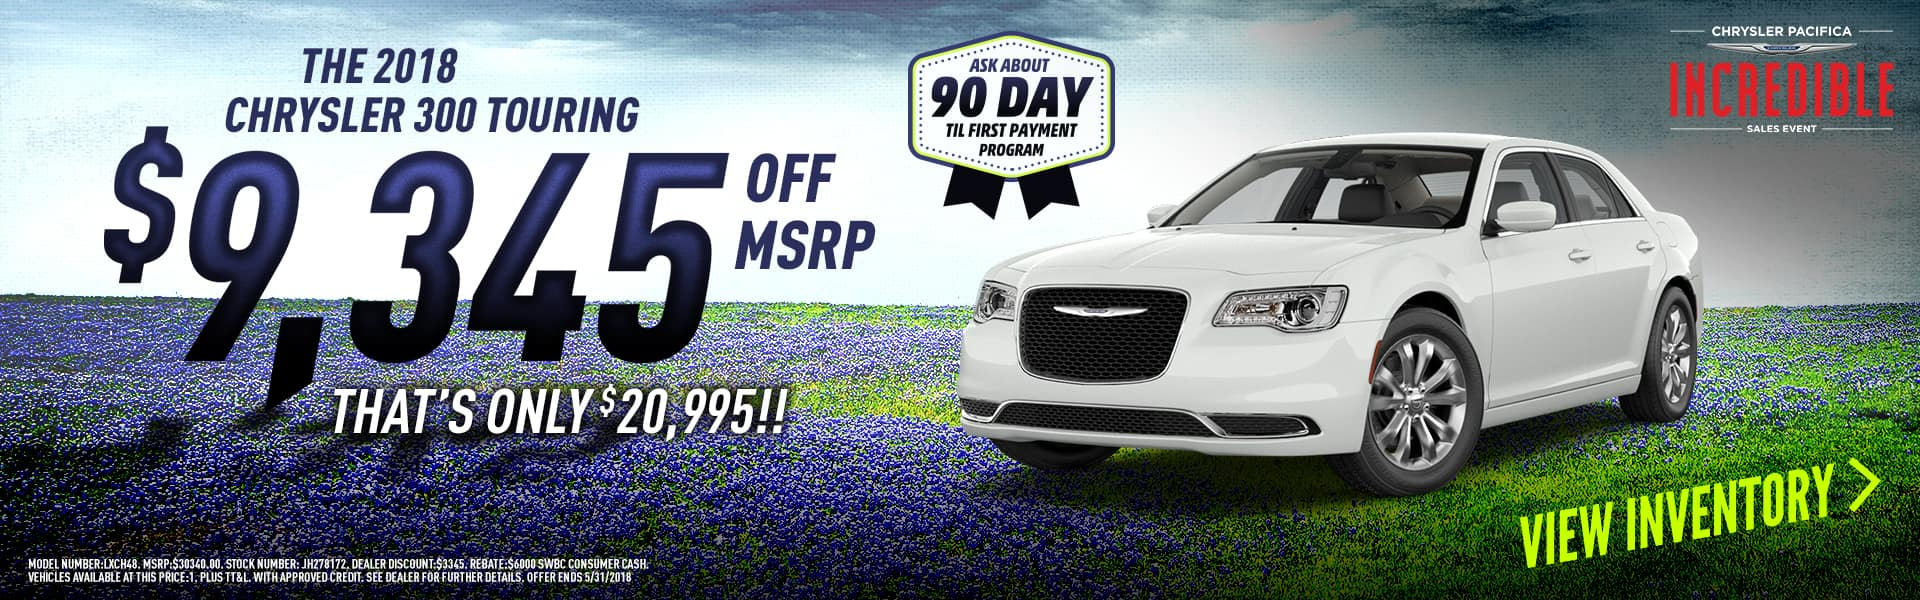 beaumont-tx-2018-chrysler-300-touring-deals-near-me